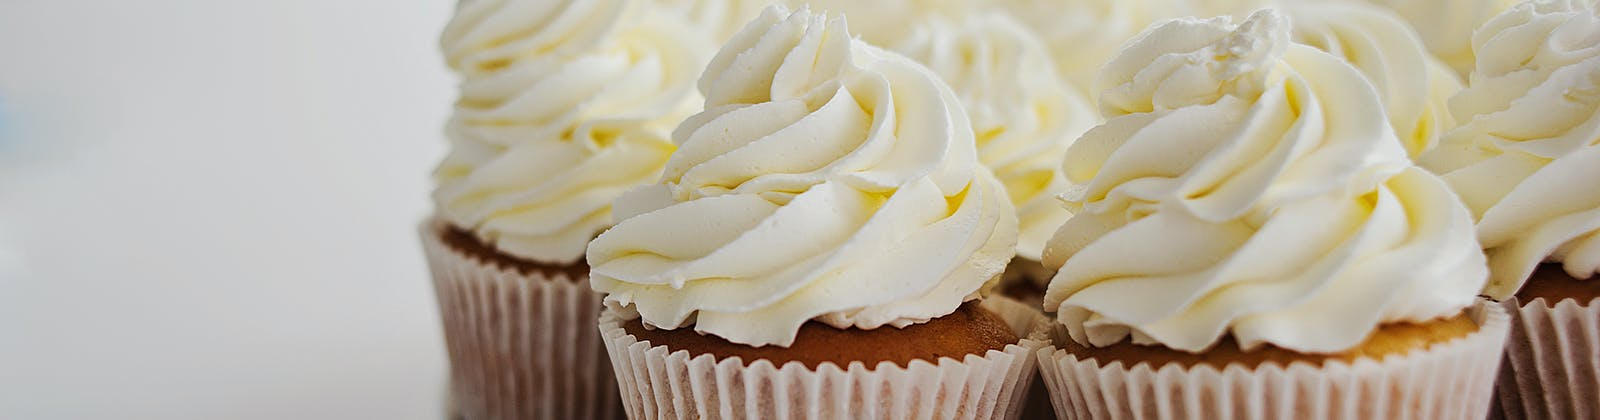 vanilla cupcakes with frosting